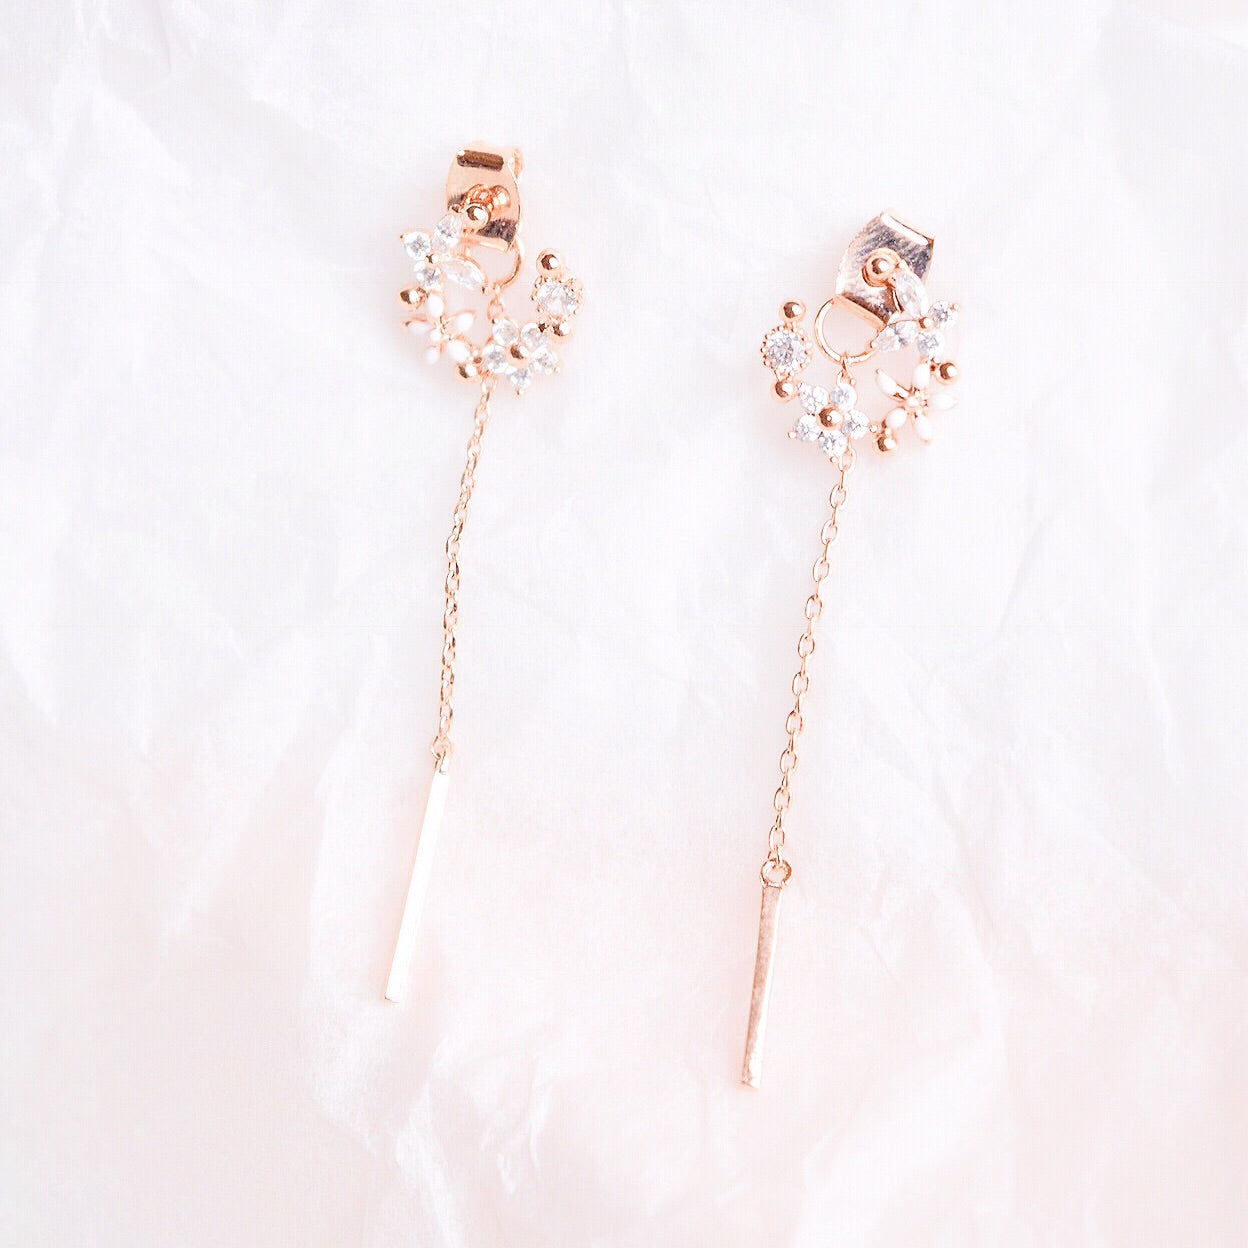 Rose Gold Korea Made Earrings Local Brand in Malaysia Cubic Zirconia Anting Dangle